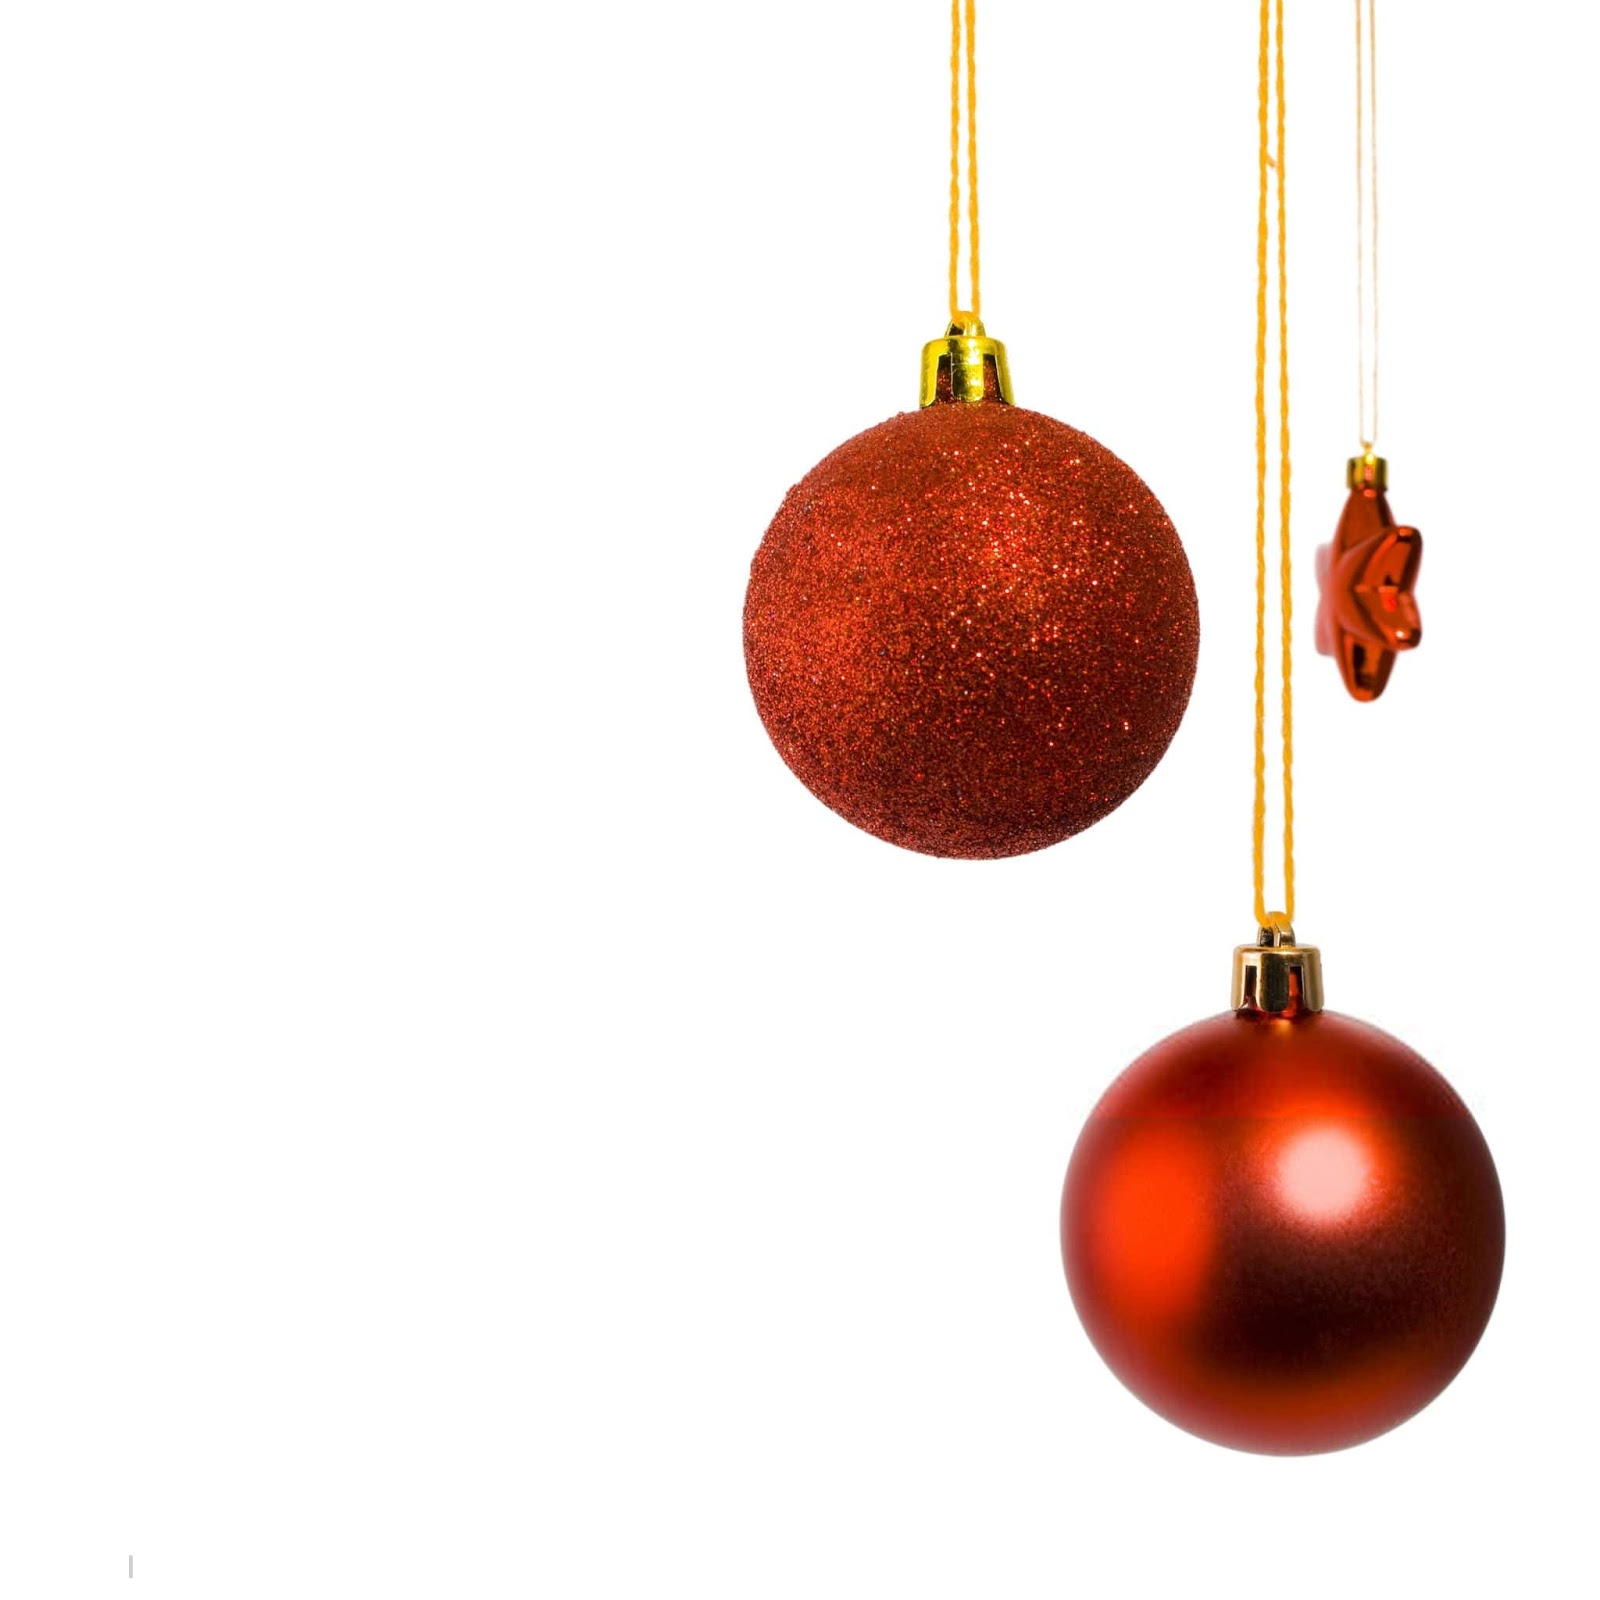 Christmas Decorations Pictures